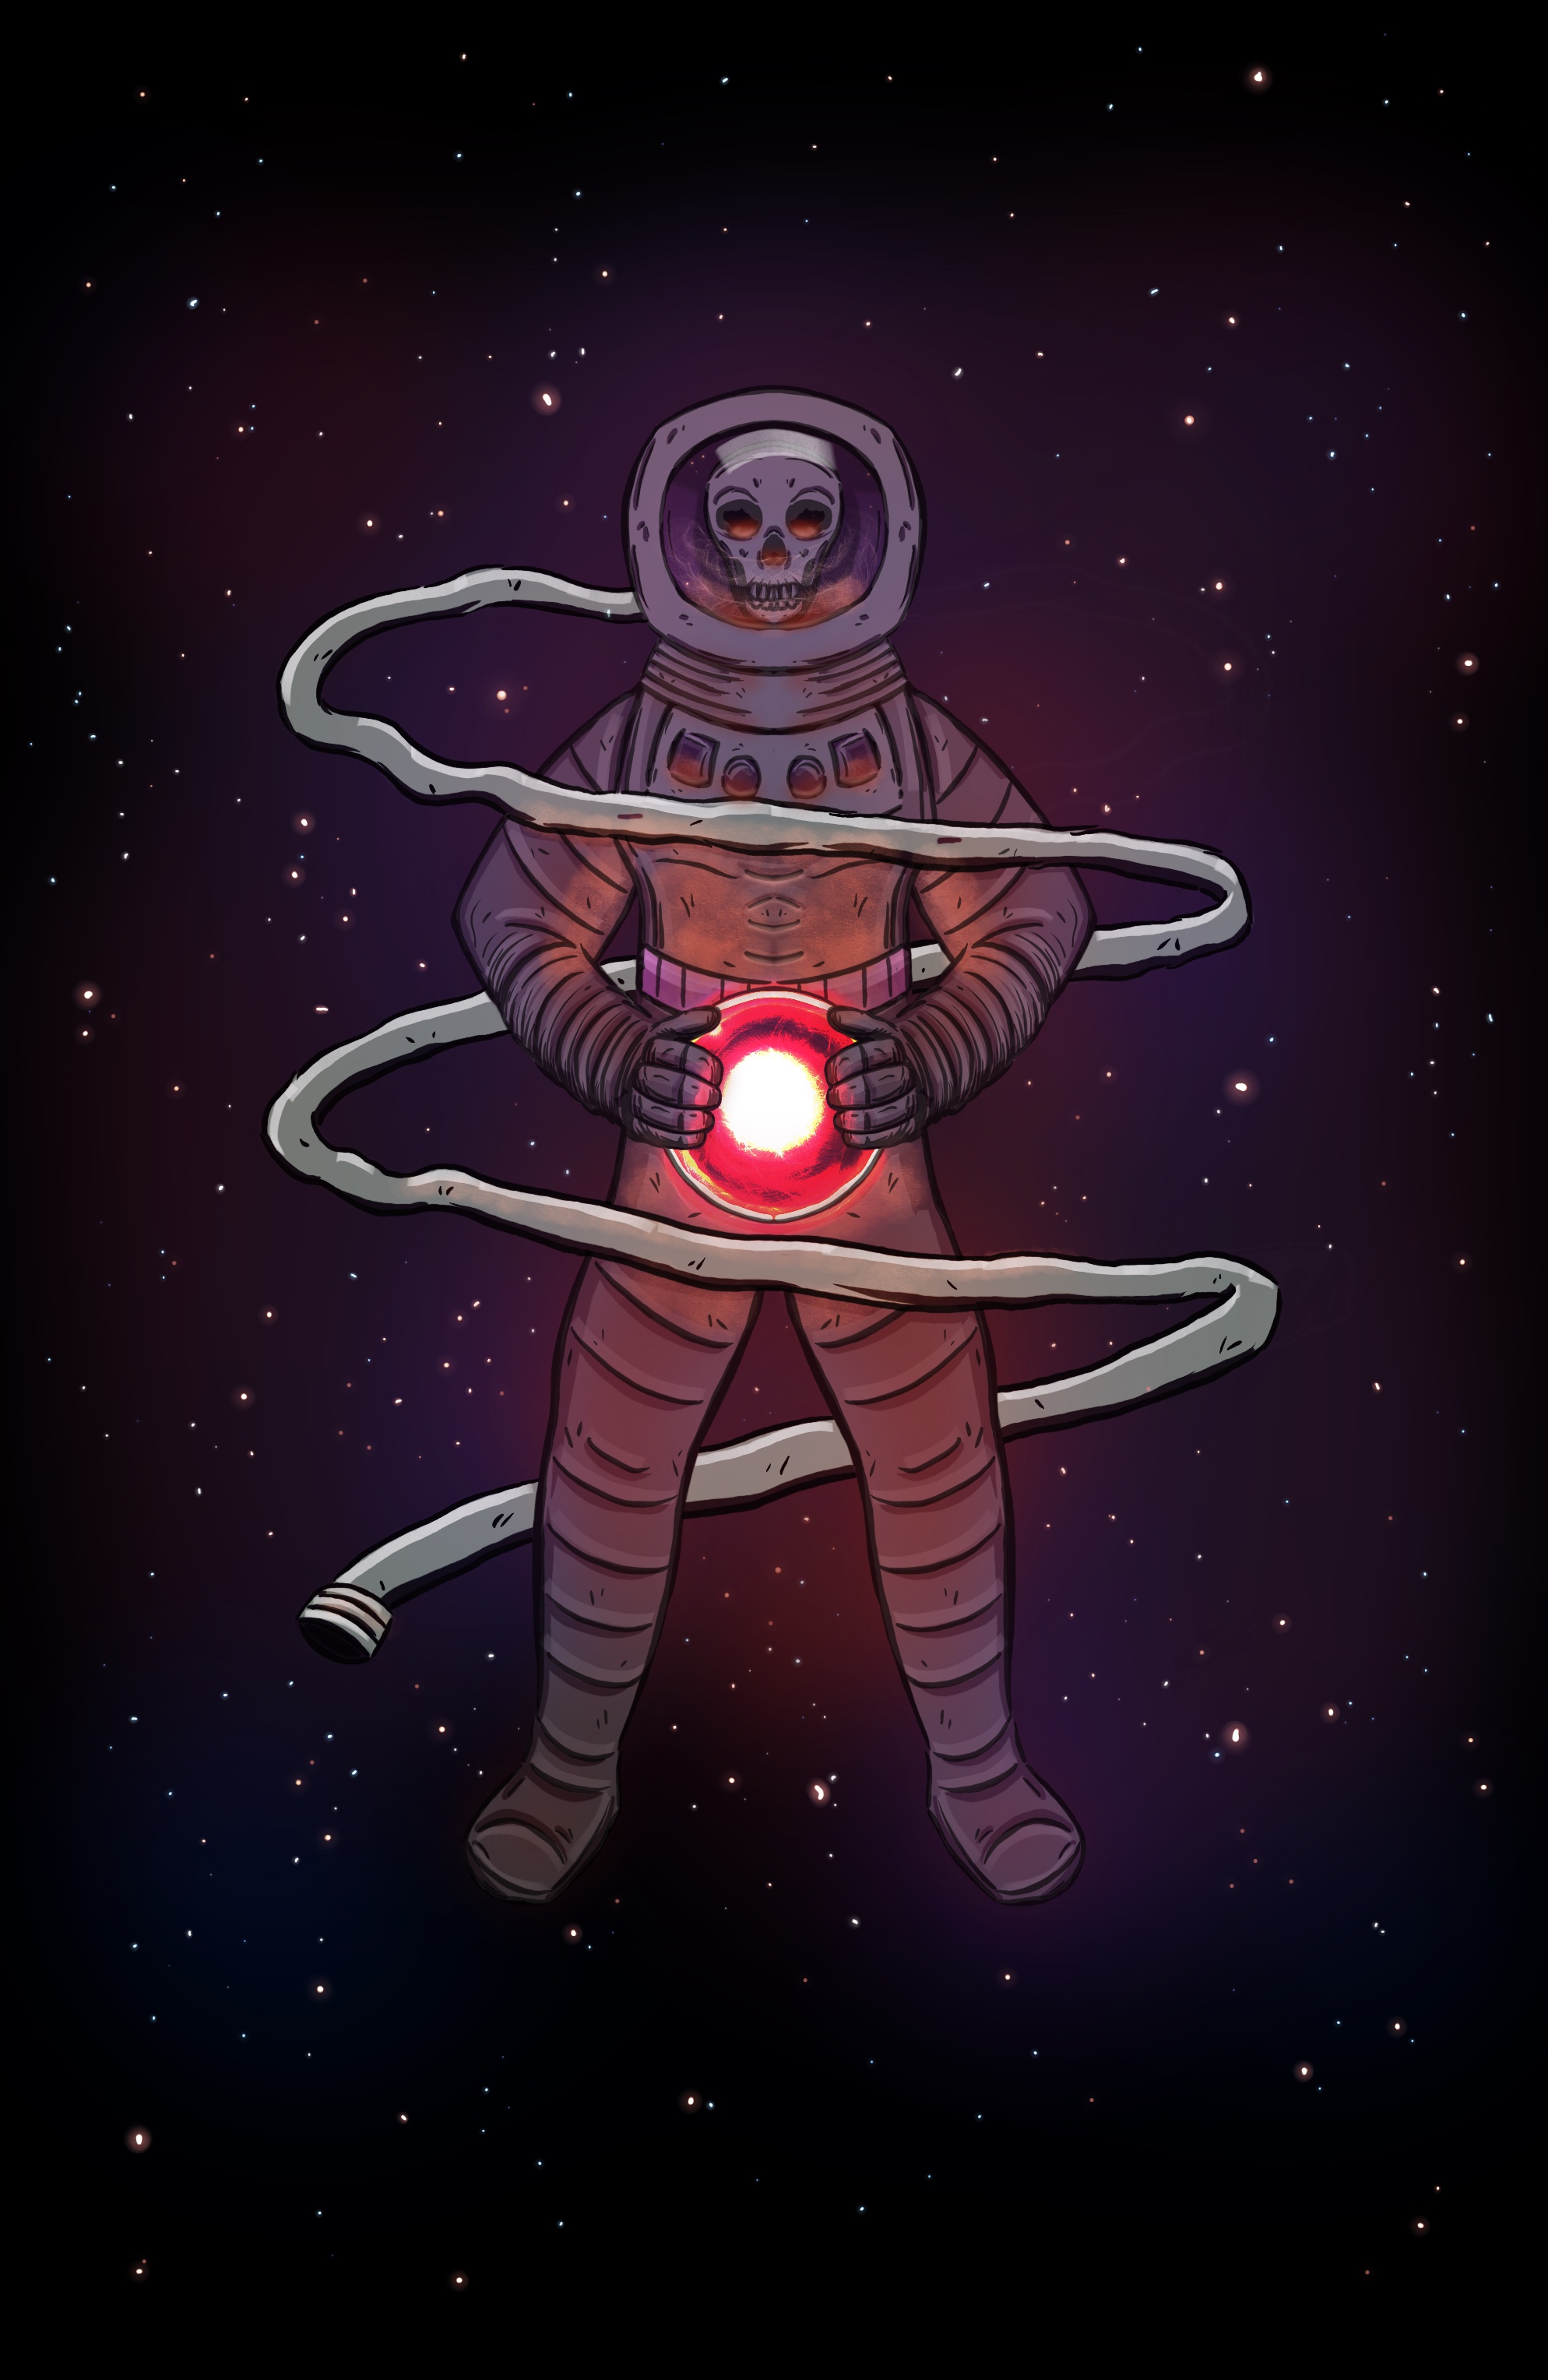 A dead astronaut splash page I did in Autodesk Sketchbook that will appear in the Cancer chapter of  Zodiac .